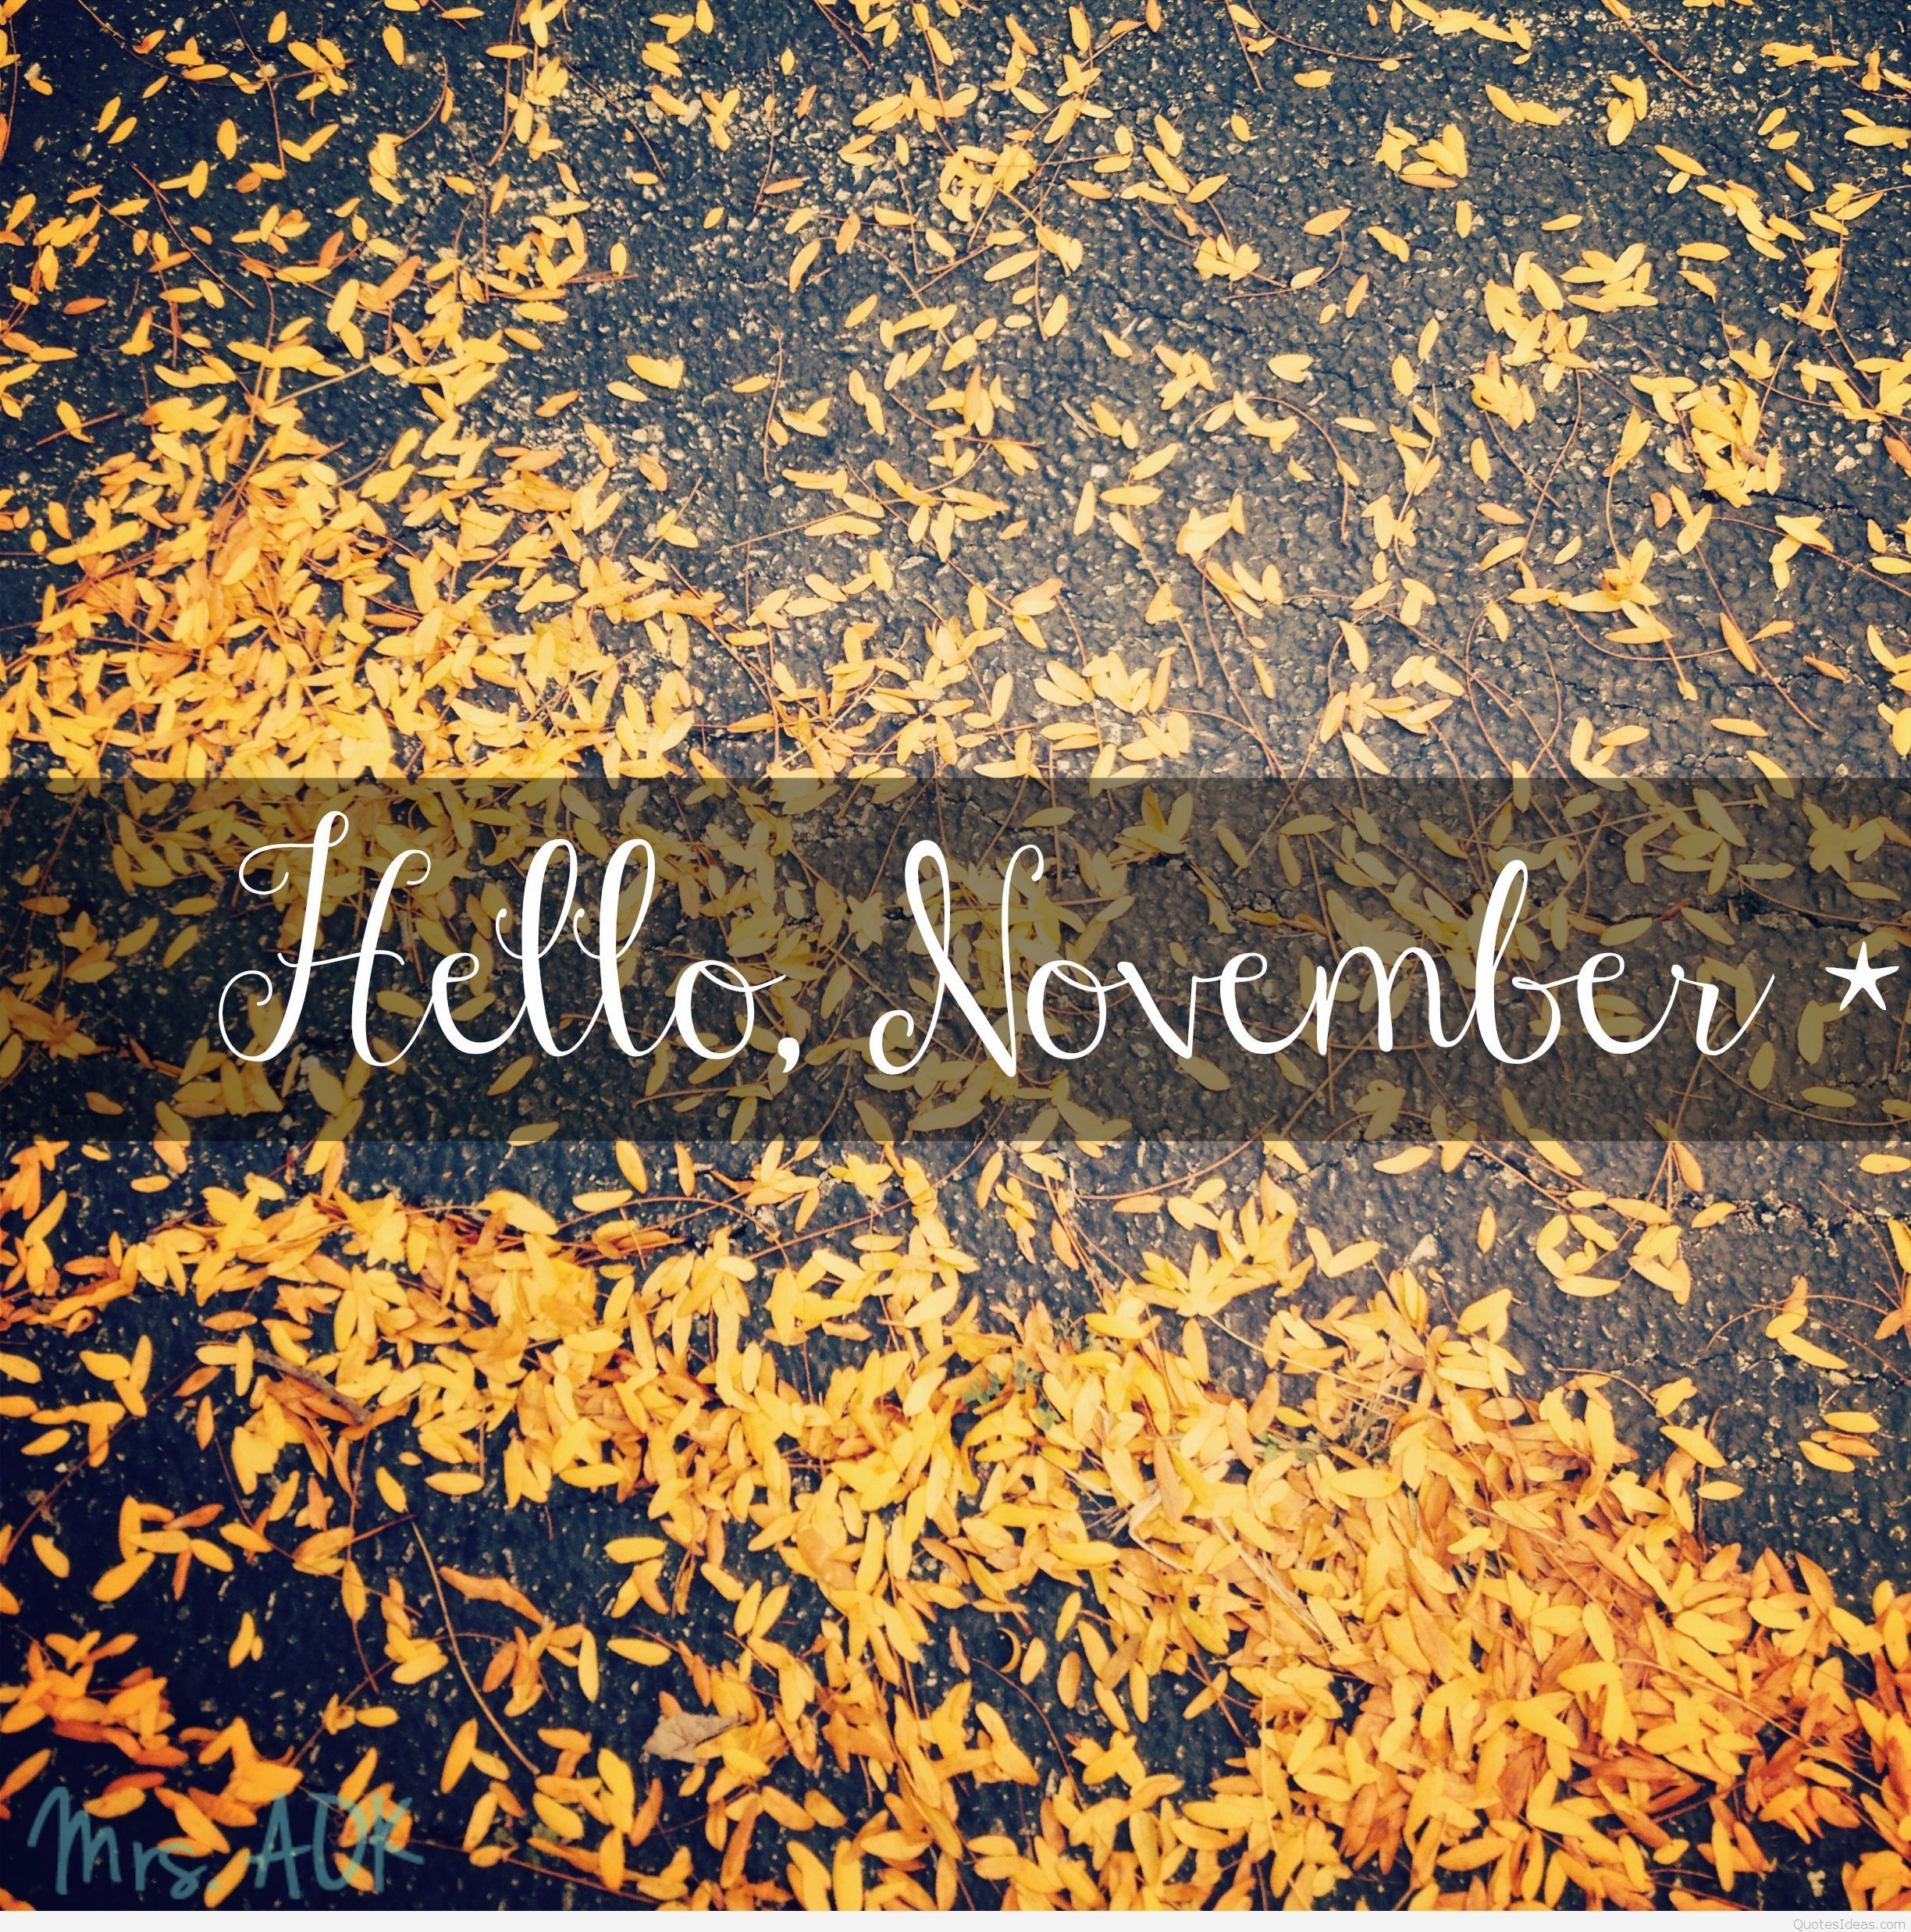 2448x2475 Pin by Lyndhel Cortez on Months,Holidays | Hello november ...